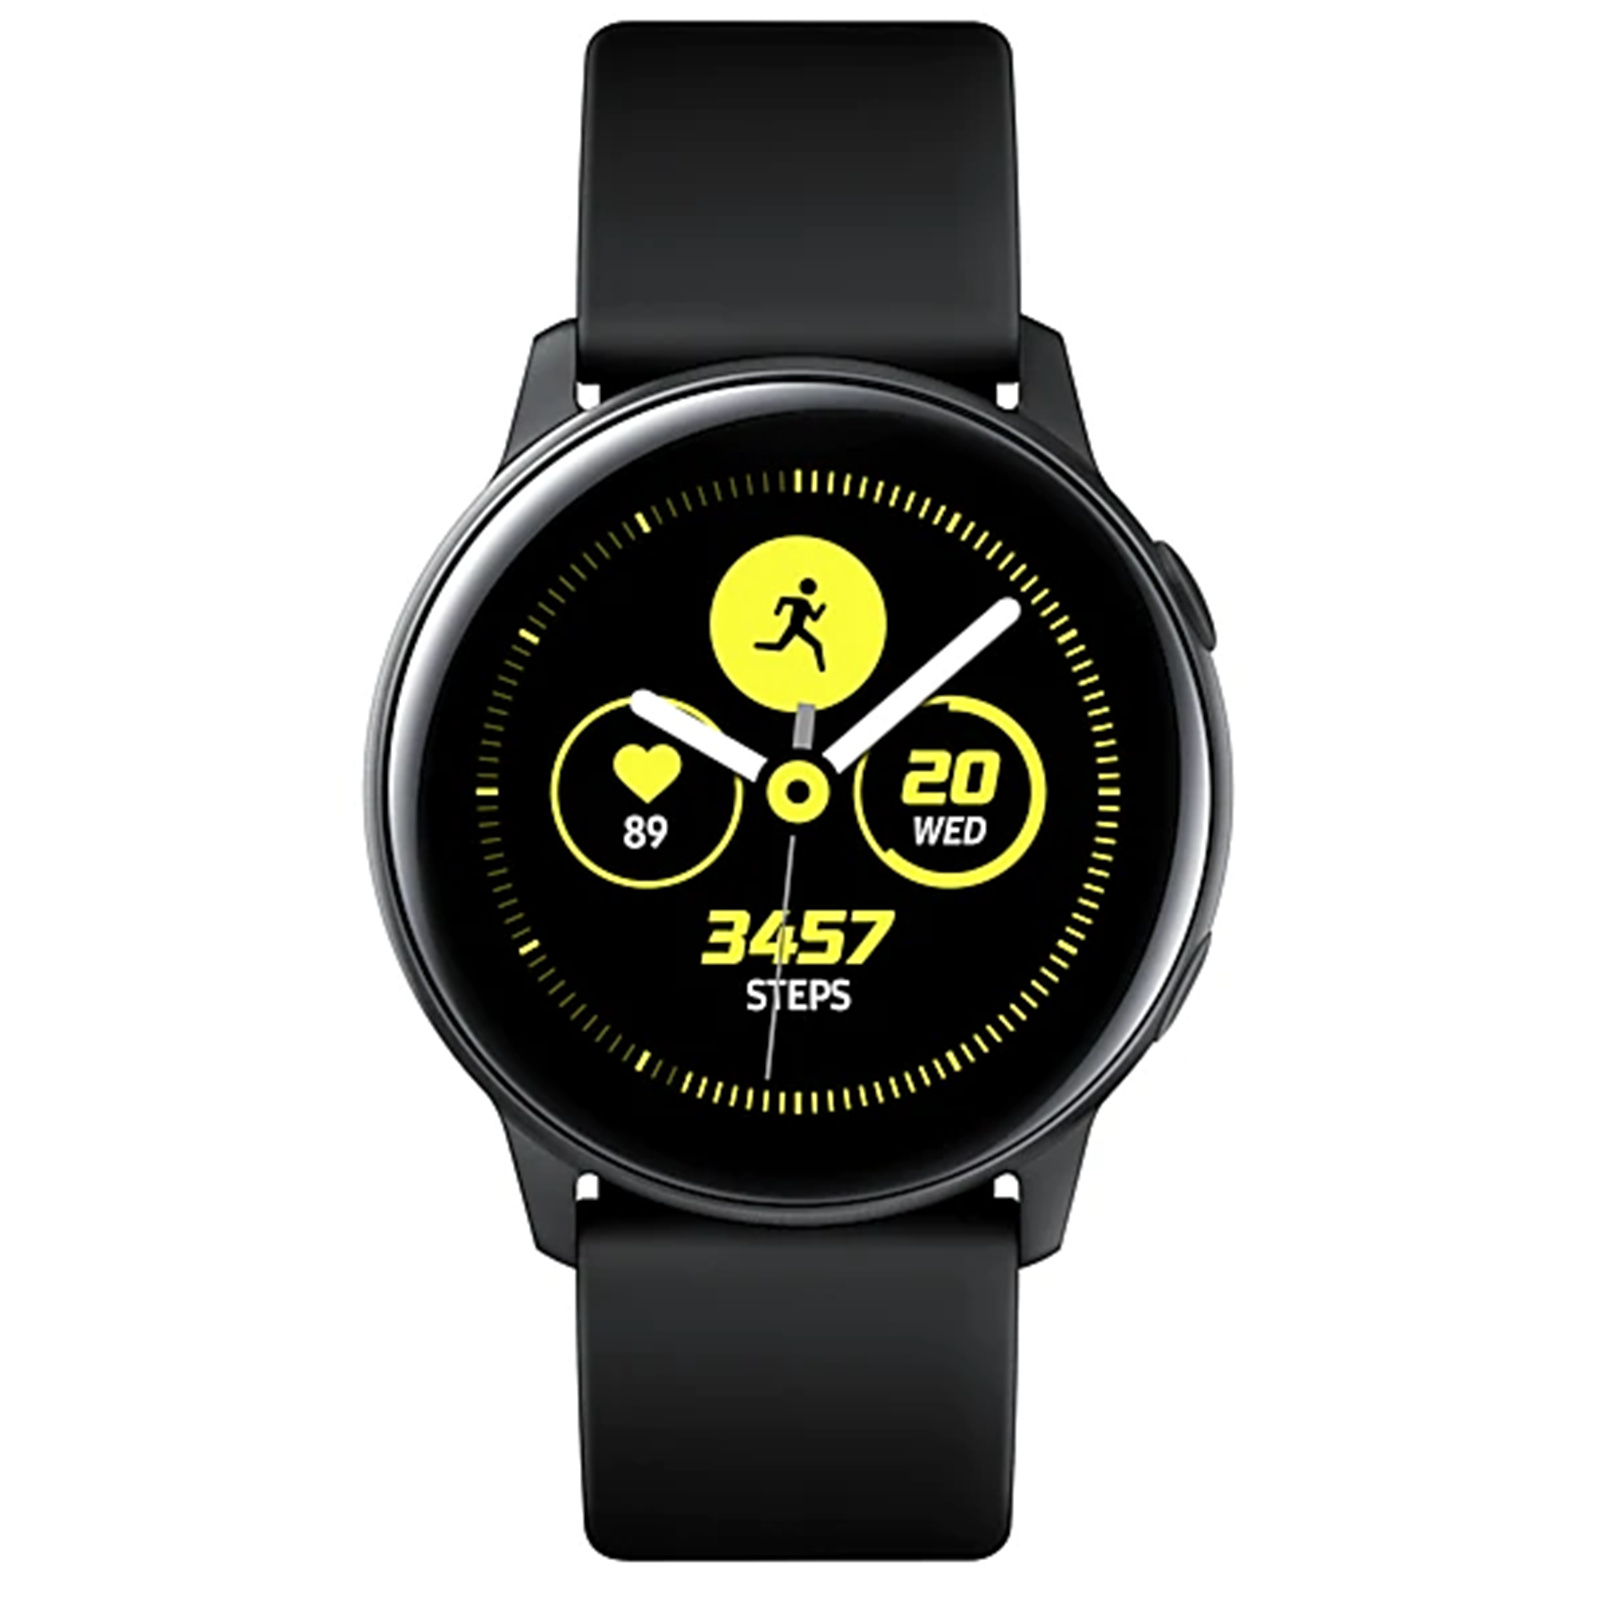 469e9a686e5 Buy the Samsung Galaxy Watch Active (2019) Smart Watch